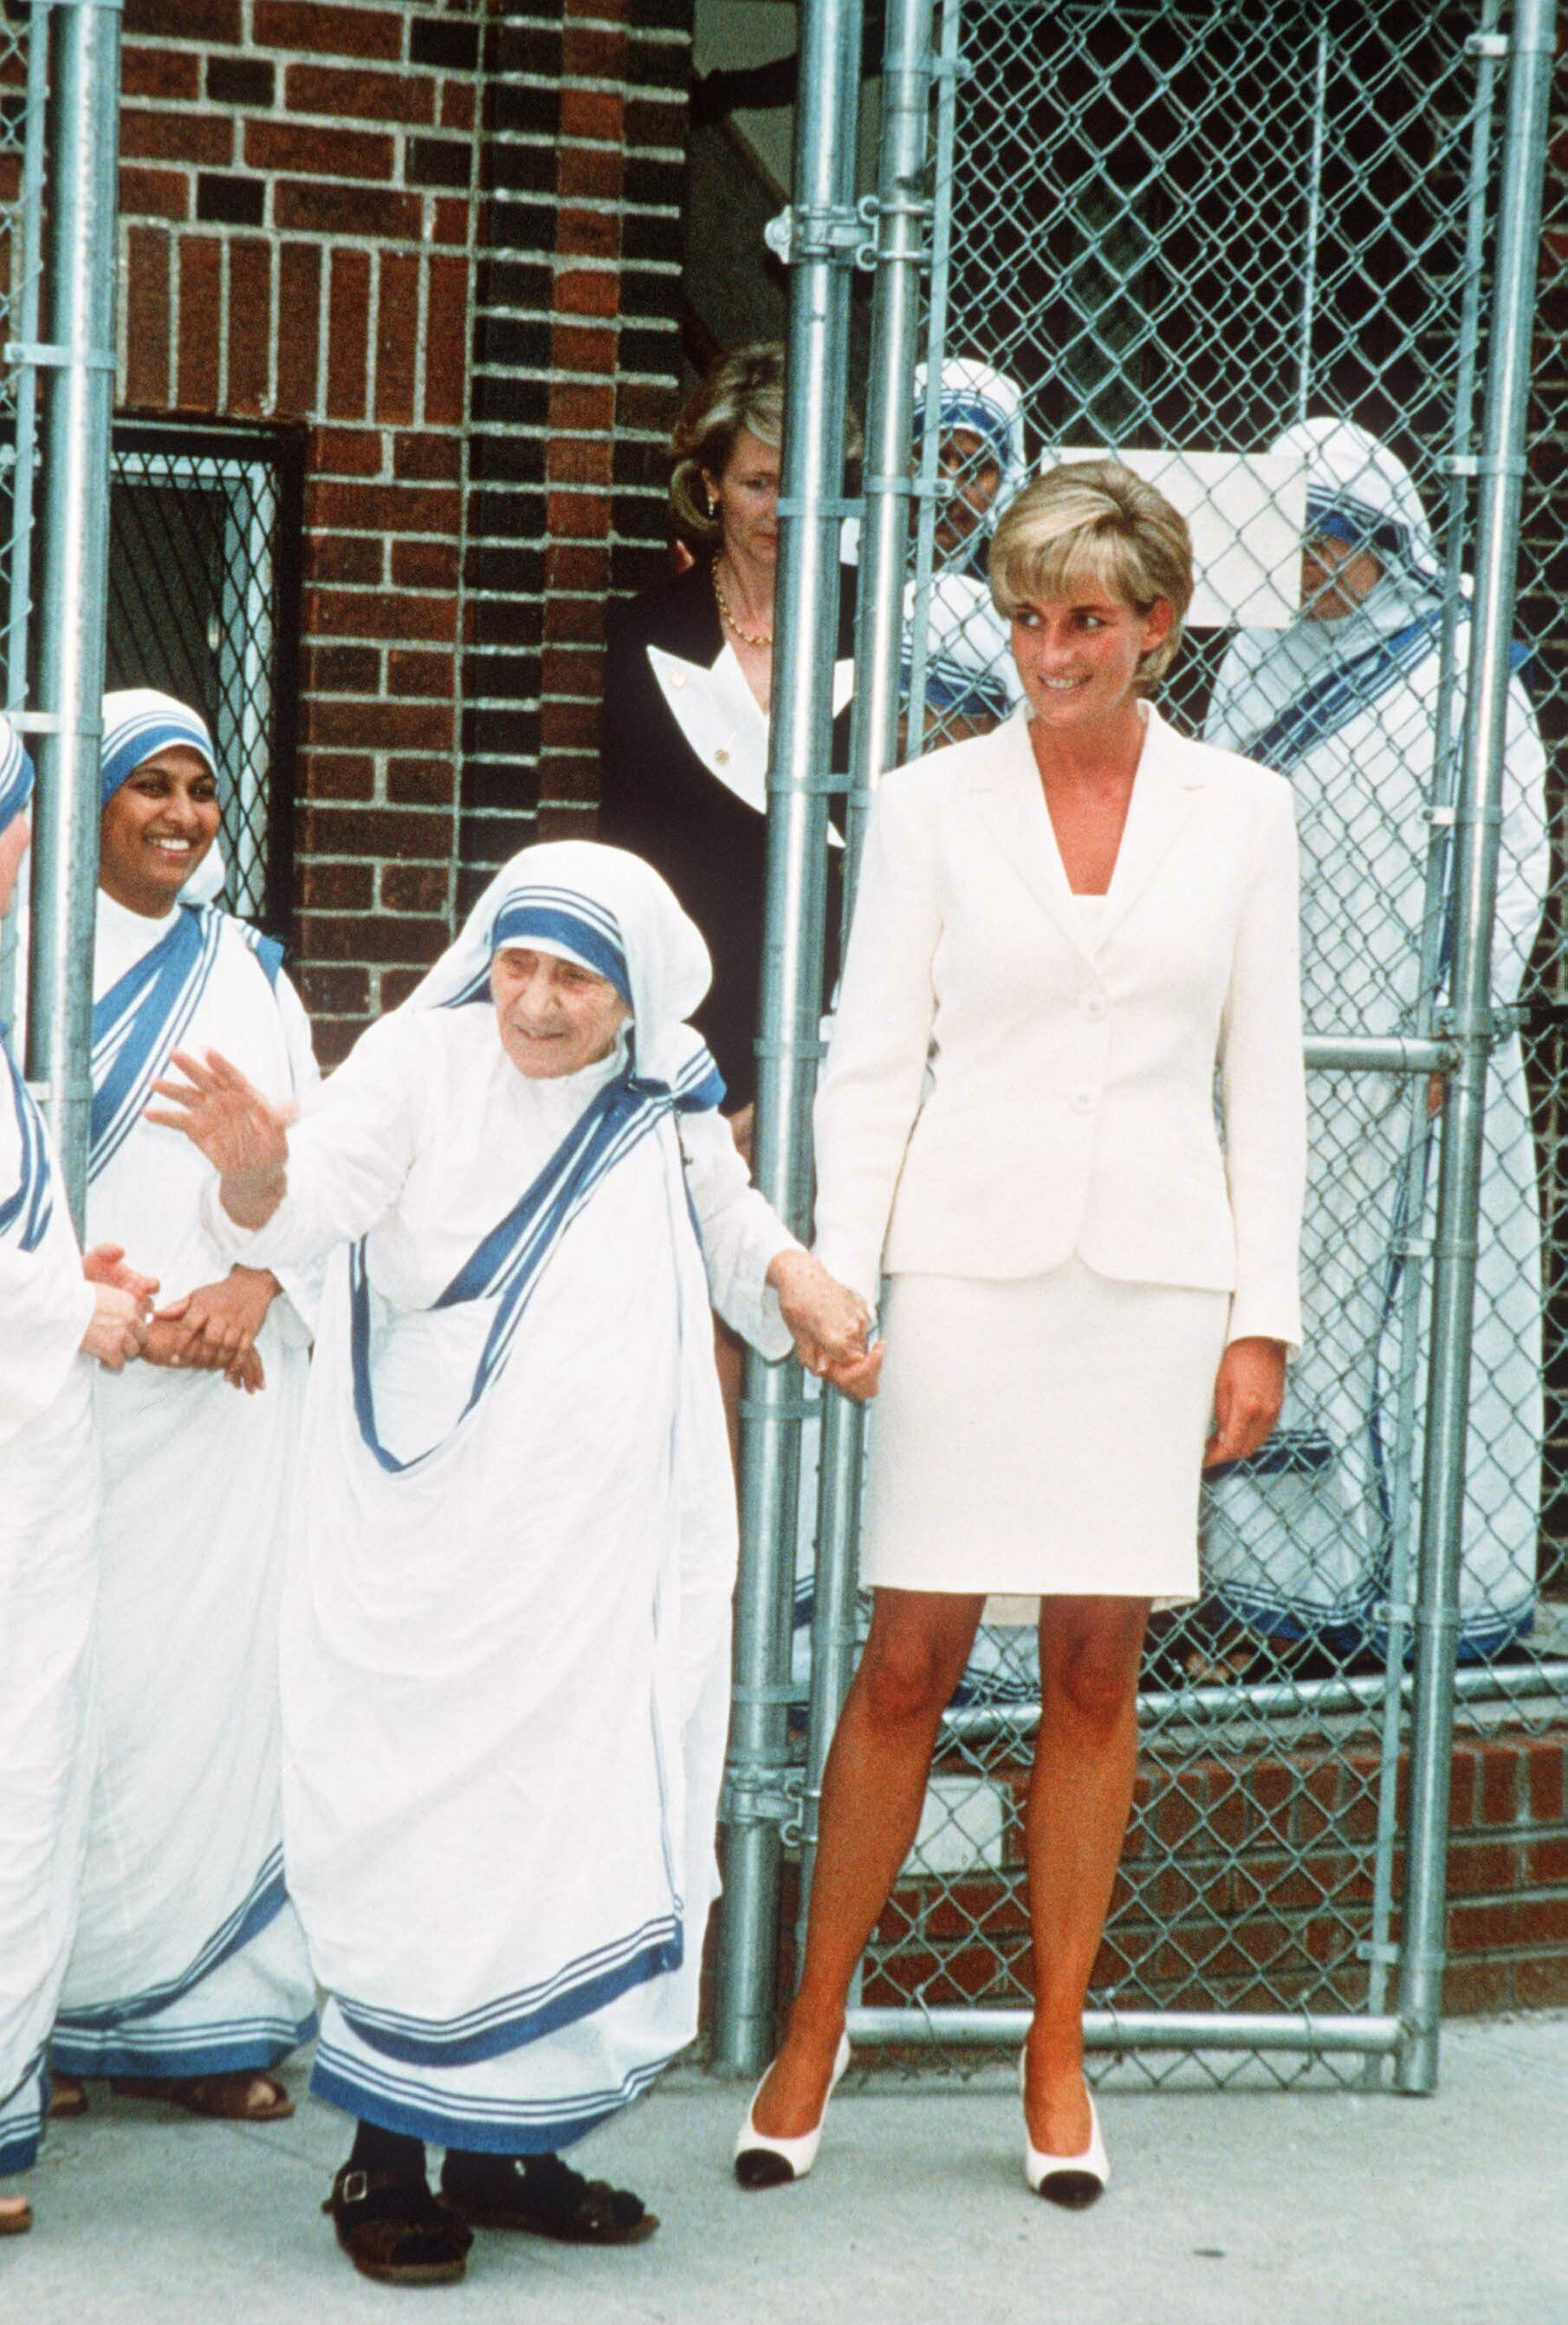 NEW YORK, USA - circa JUNE 18, 1997:  (FILE PHOTO) The Princess of Wales bonds with Mother Teresa in New York. (Photo by Anwar Hussein/WireImage) On July 1st  Diana, Princess Of Wales would have celebrated her 50th BirthdayPlease refer to the following profile on Getty Images Archival for further imagery. http://www.gettyimages.co.uk/Search/Search.aspx?EventId=107811125&EditorialProduct=ArchivalFor further images see also:Princess Diana:http://www.gettyimages.co.uk/Account/MediaBin/LightboxDetail.aspx?Id=17267941&MediaBinUserId=5317233Following Diana's Death:http://www.gettyimages.co.uk/Account/MediaBin/LightboxDetail.aspx?Id=18894787&MediaBinUserId=5317233Princess Diana  - A Style Icon:http://www.gettyimages.co.uk/Account/MediaBin/LightboxDetail.aspx?Id=18253159&MediaBinUserId=5317233